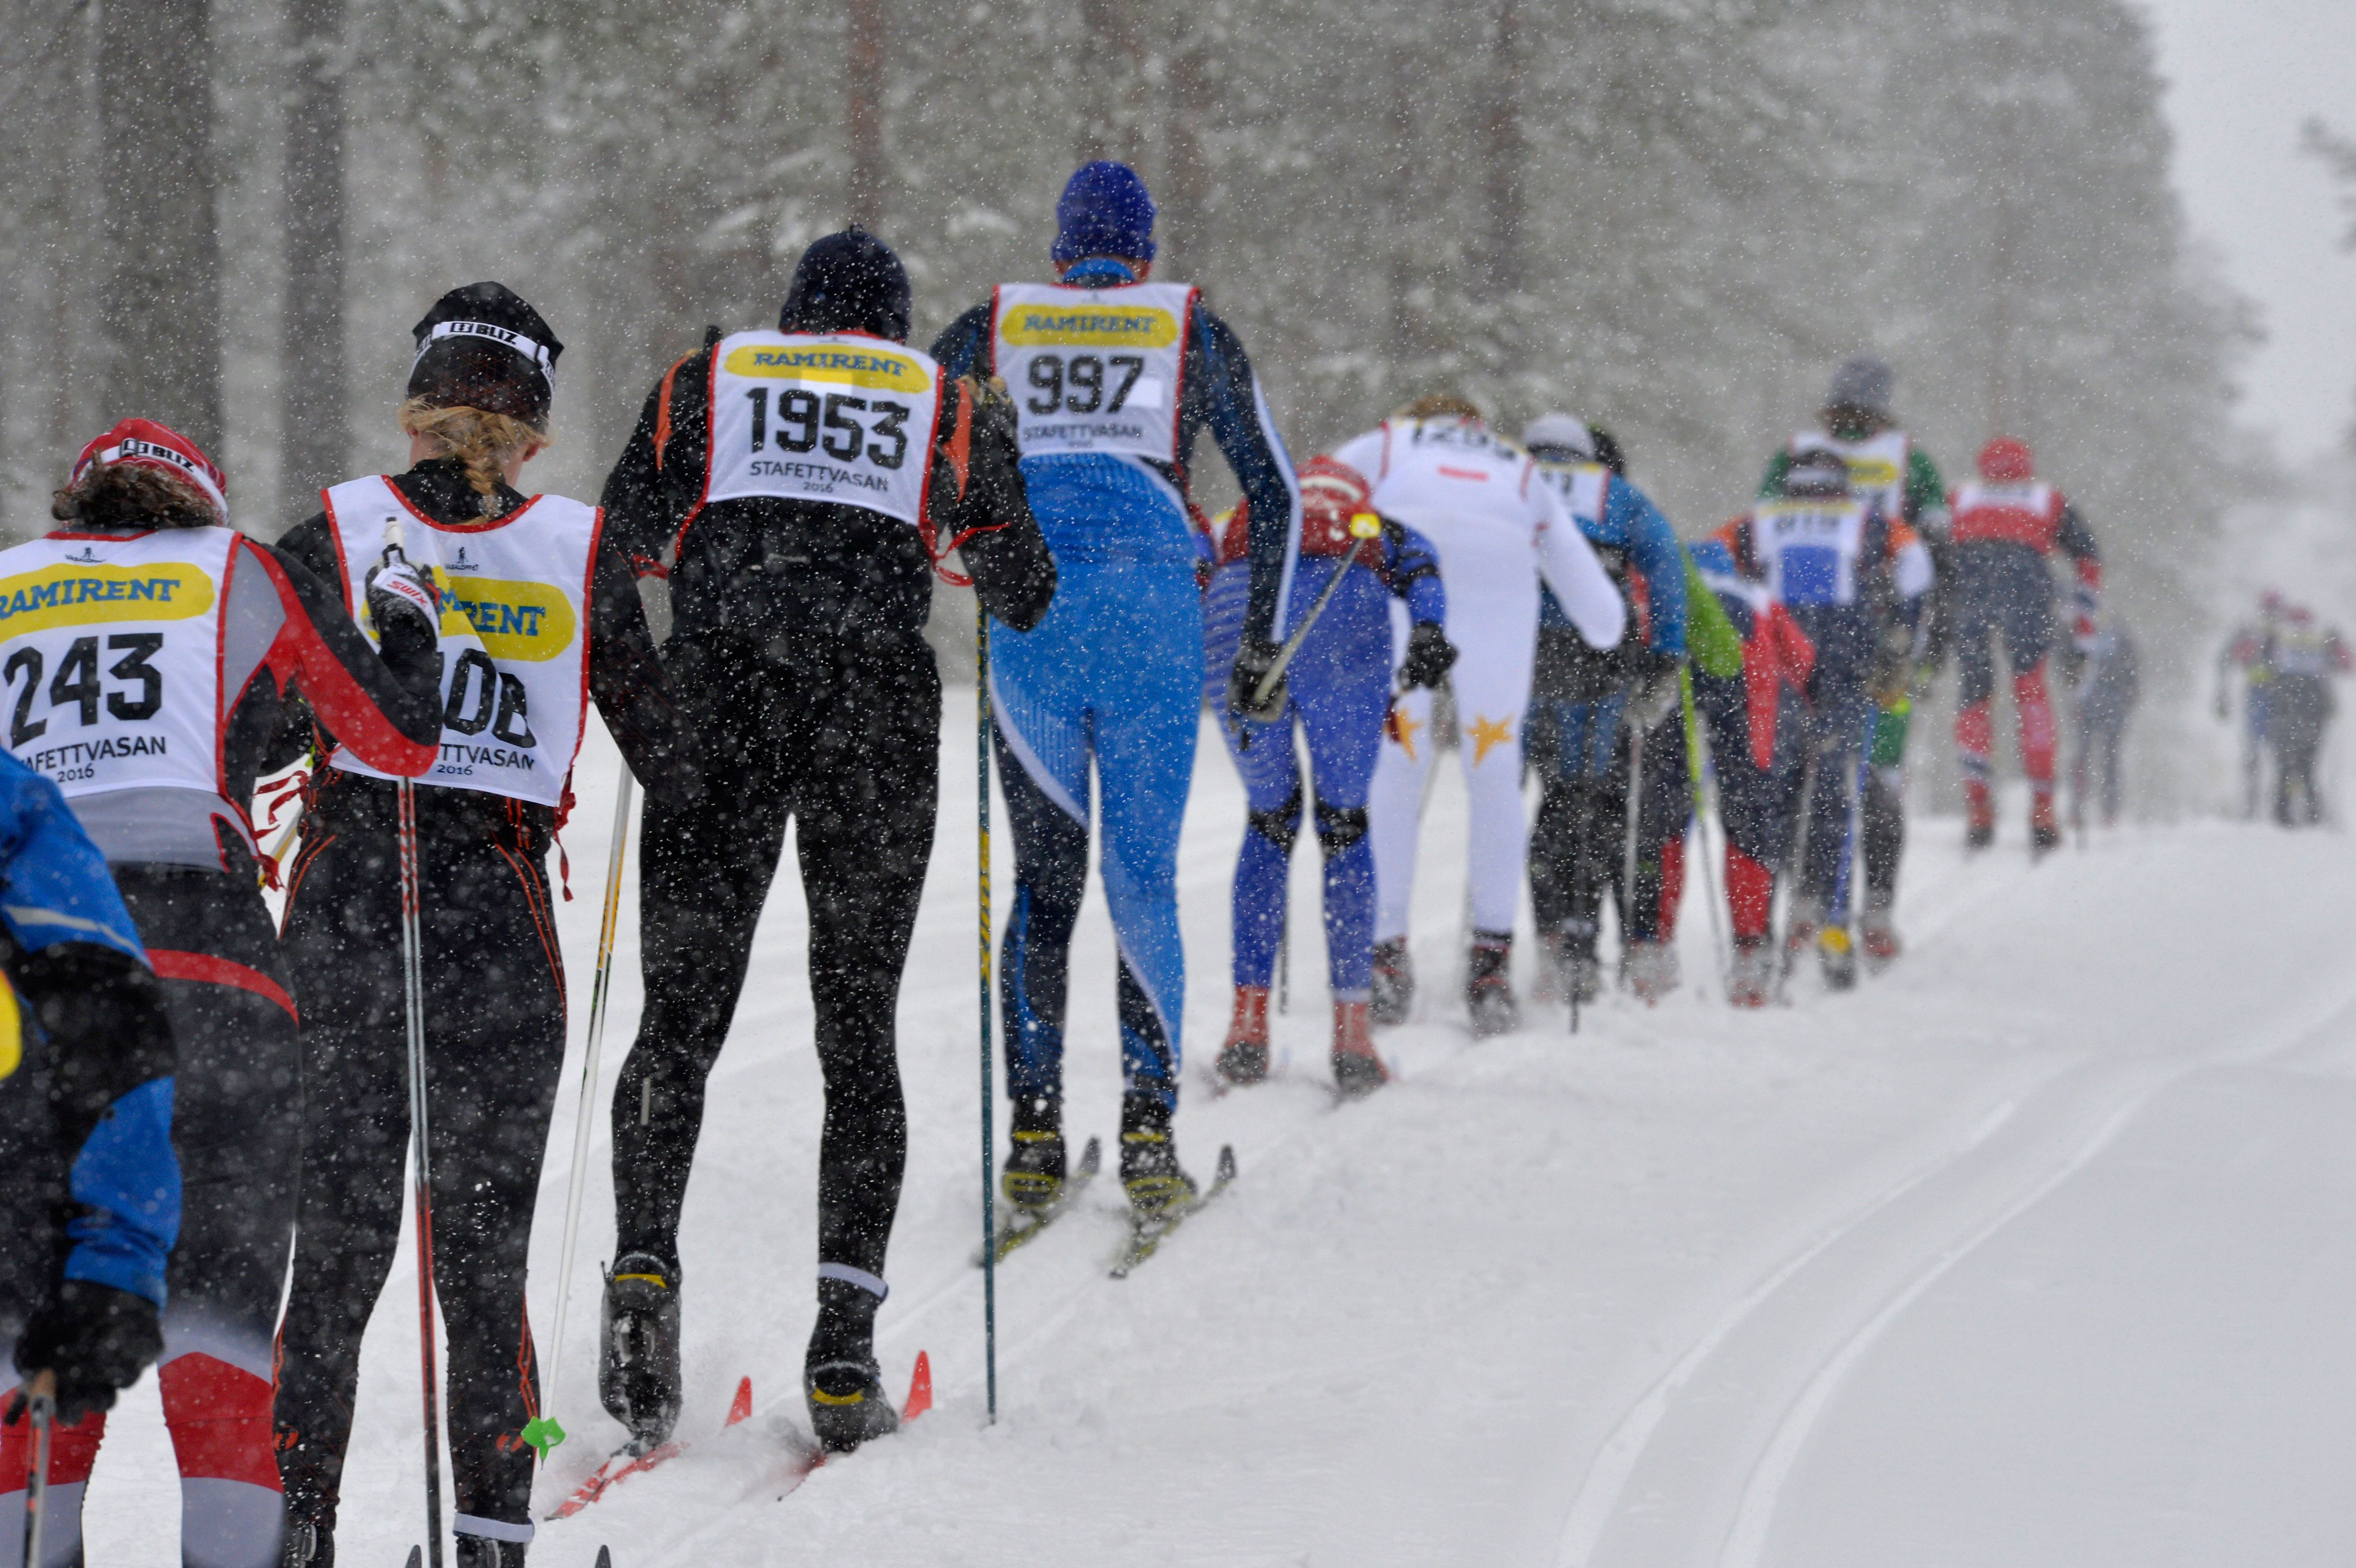 StafettVasan - Relay race on skis